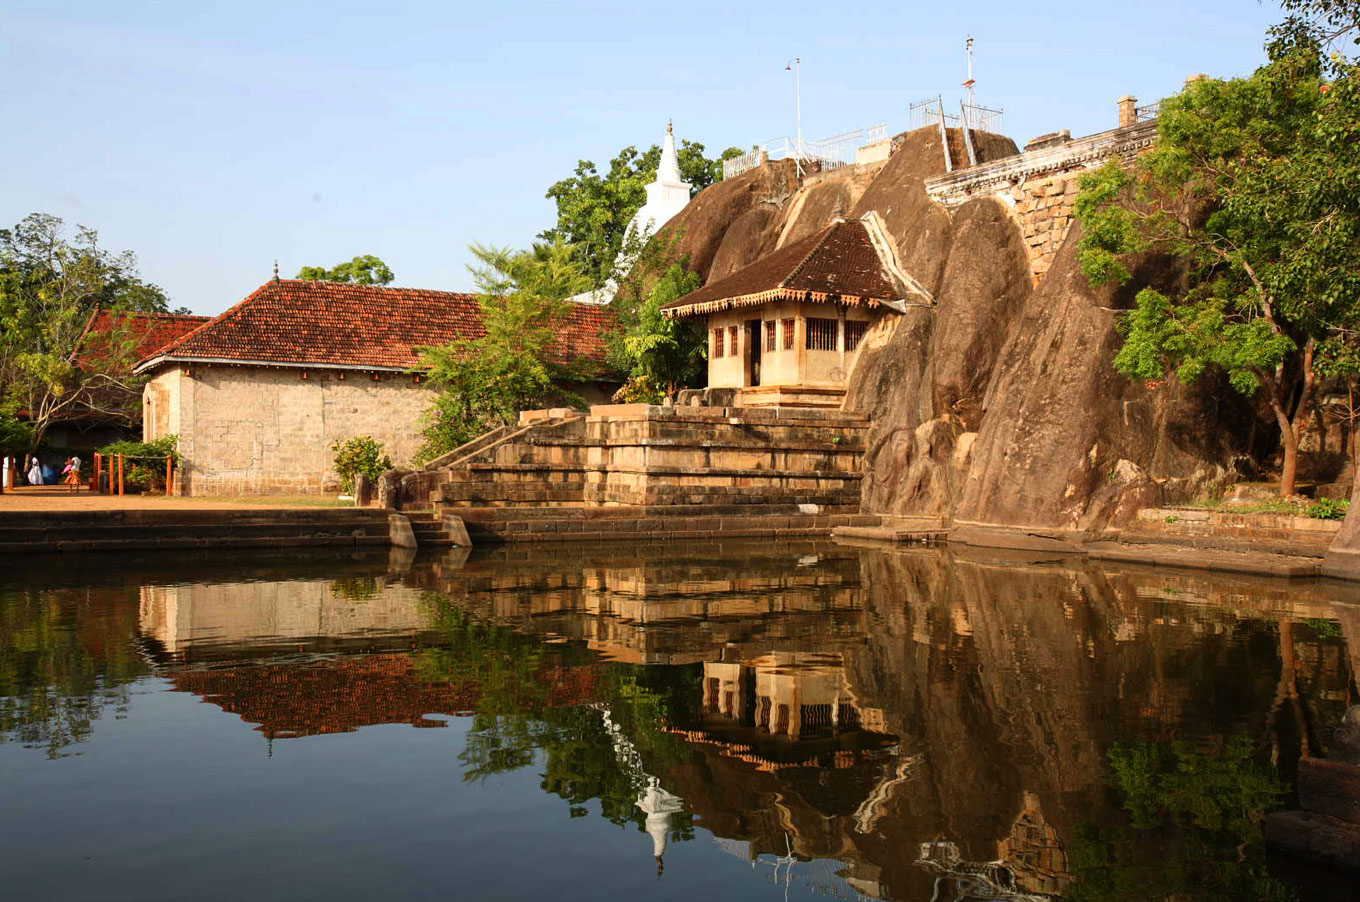 Architecture Tour, Magical Isle Holidays, Sri Lanka